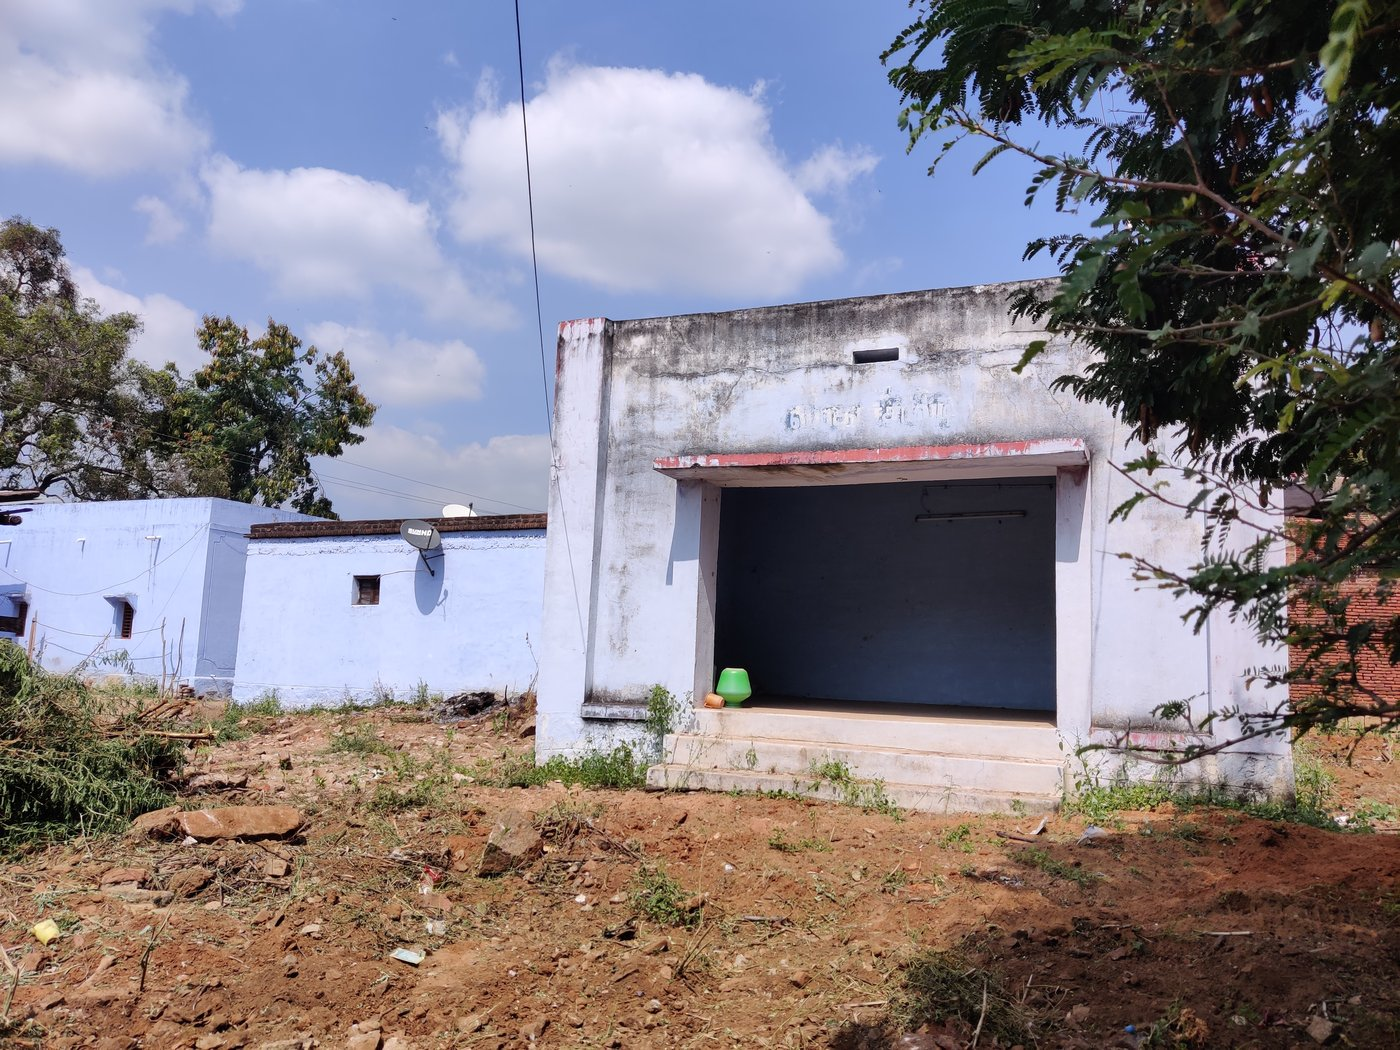 Left: The small, ramshackle muttuthurai in Saptur Alagapuri is located in an isolated spot. Rather than stay here, women prefer camping on the streets when they are menstruating. Right: The space beneath the stairs where Karpagam stays when she menstruates during her visits to the village